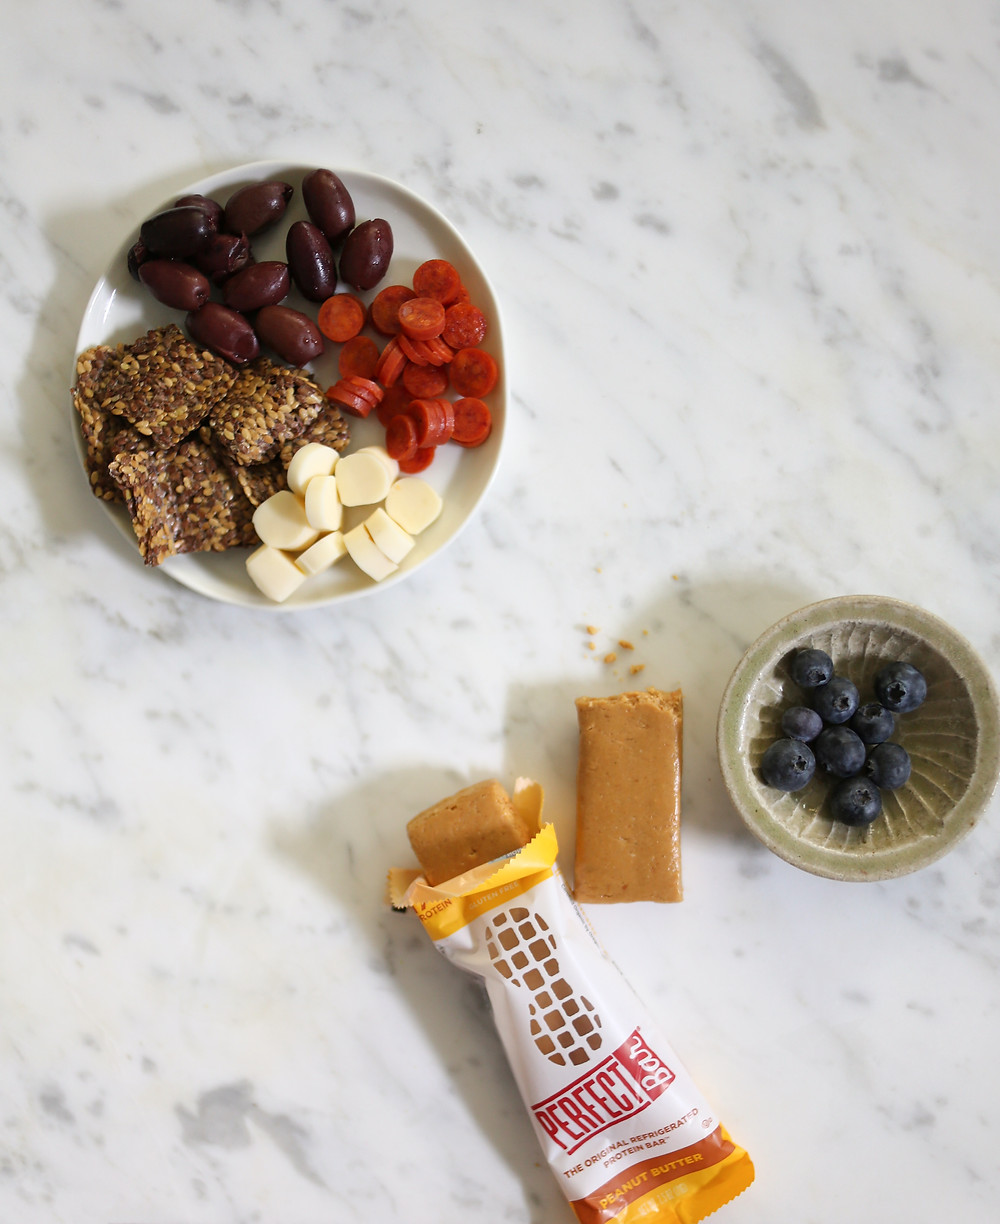 dried fruit, berries, granola, and peanut butter bar